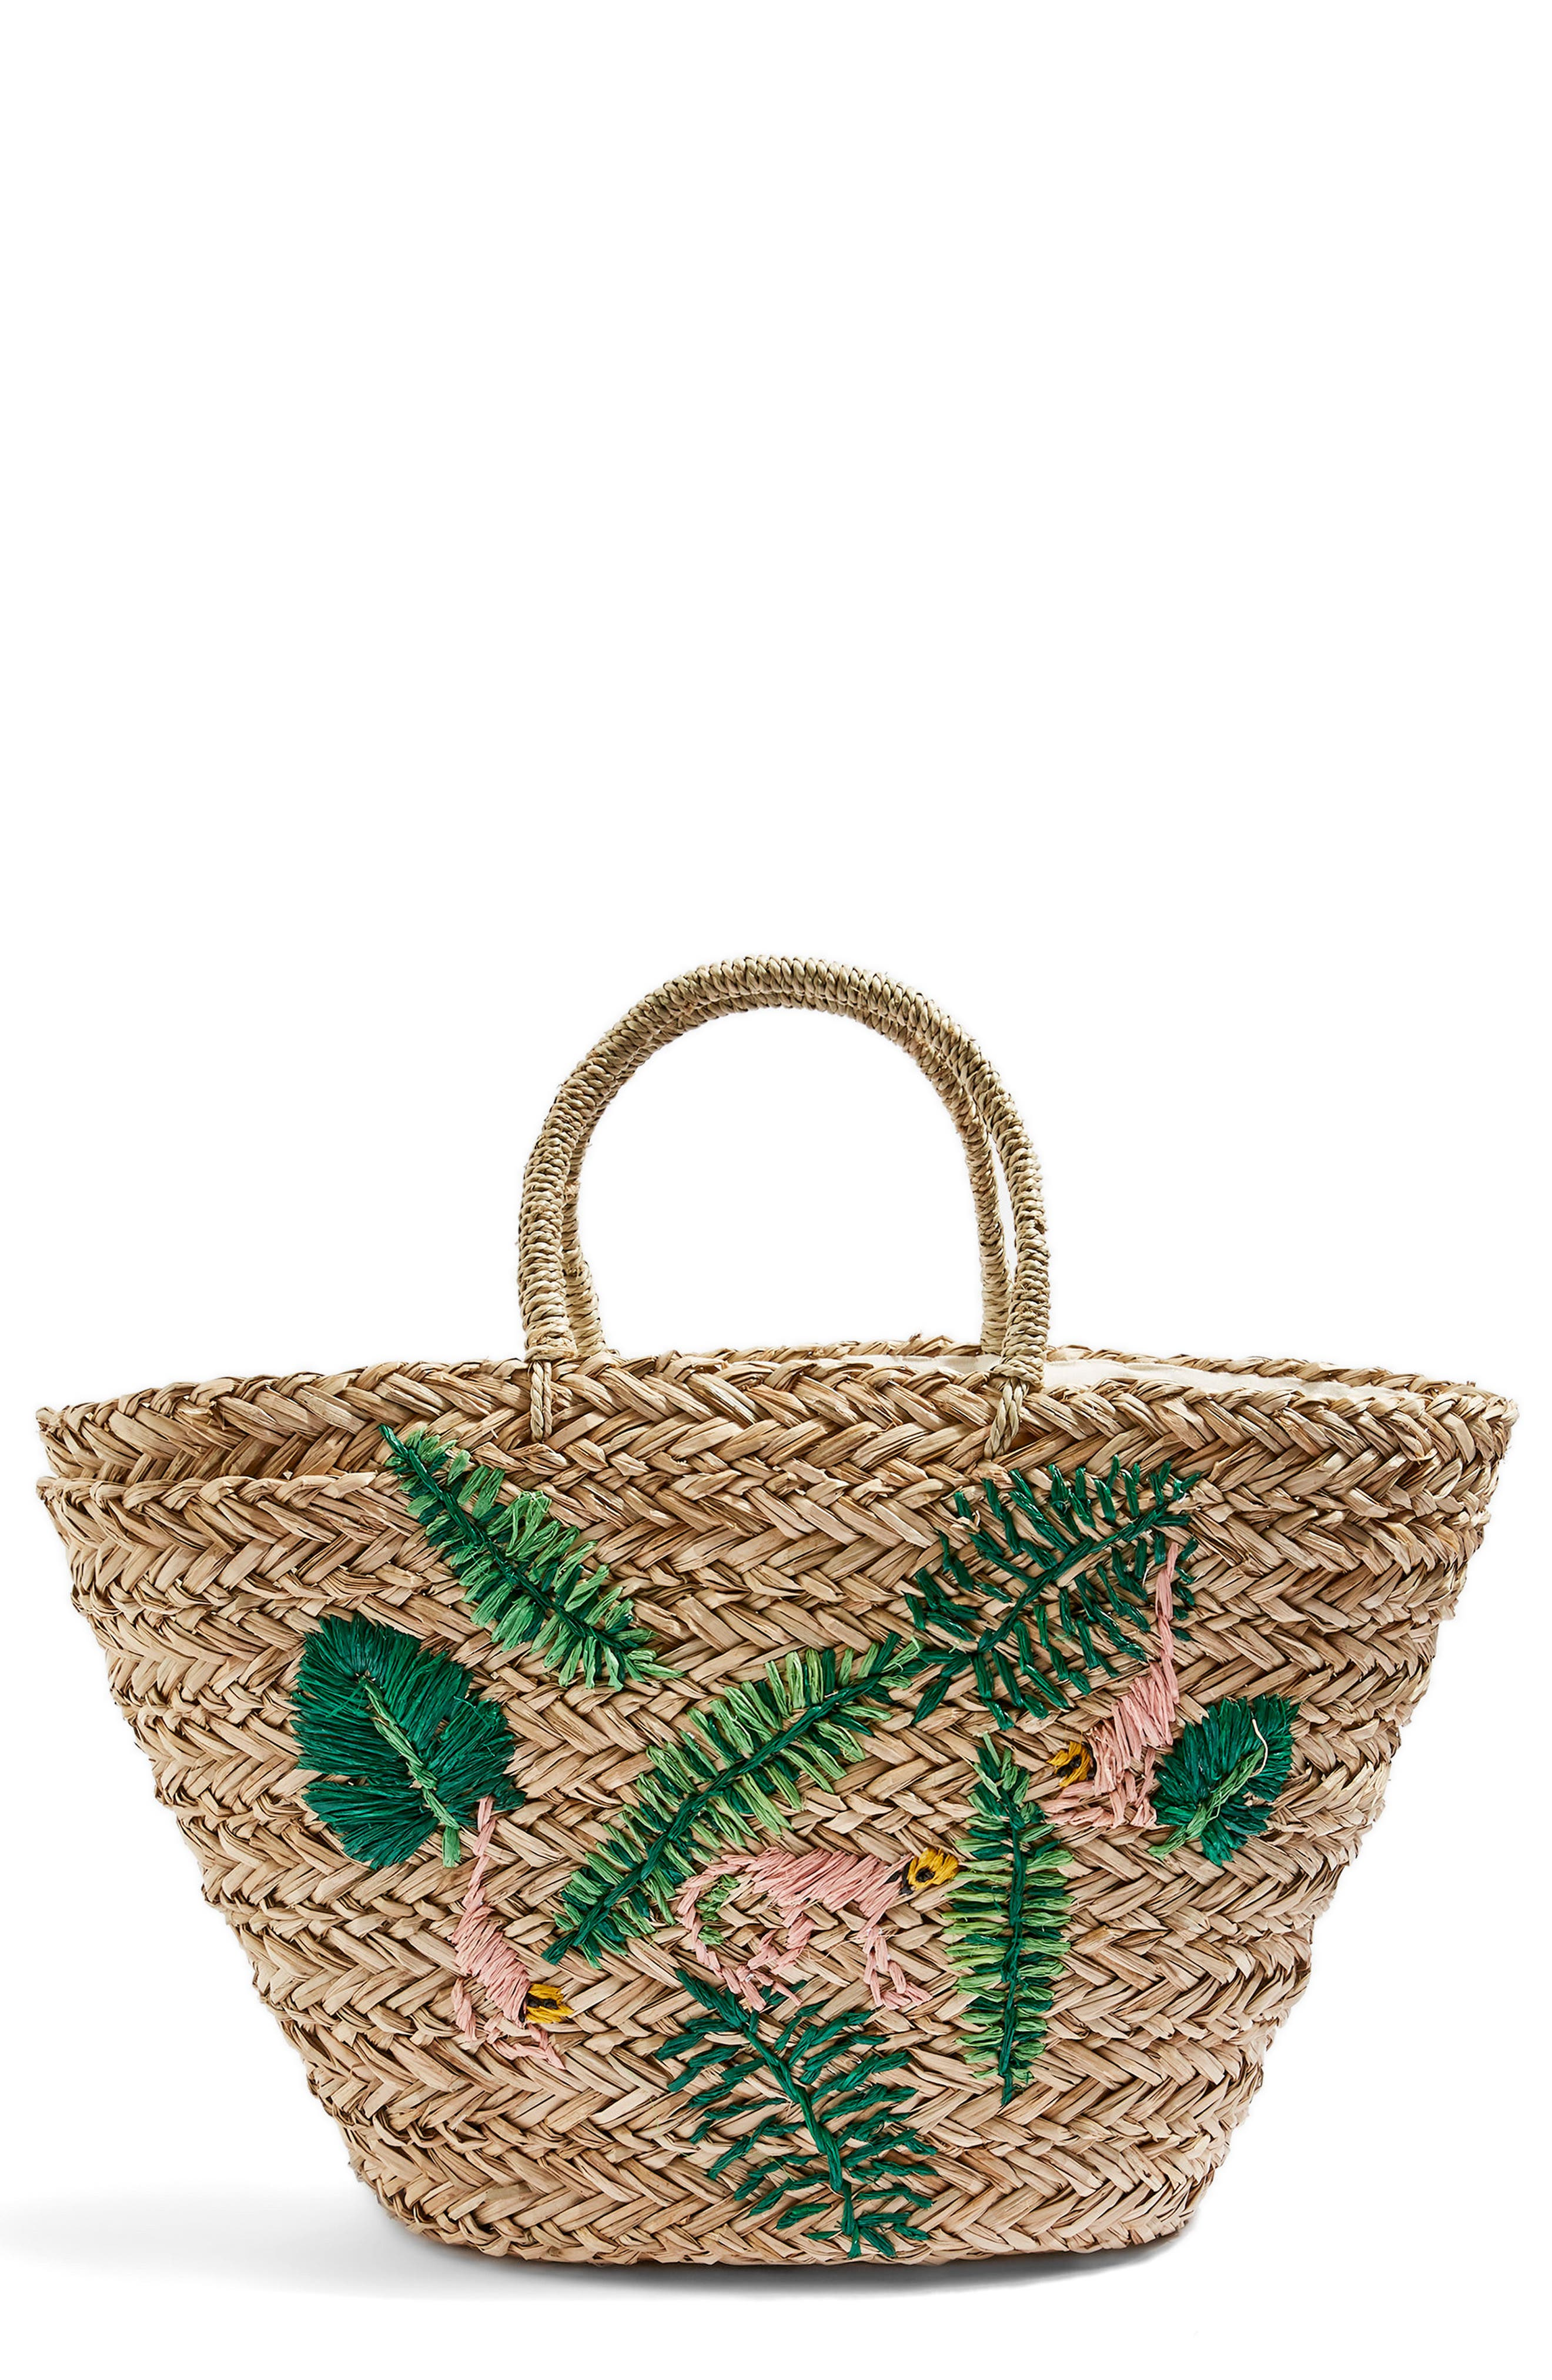 Barrio Monkey Embroidered Straw Tote Bag,                         Main,                         color, 250